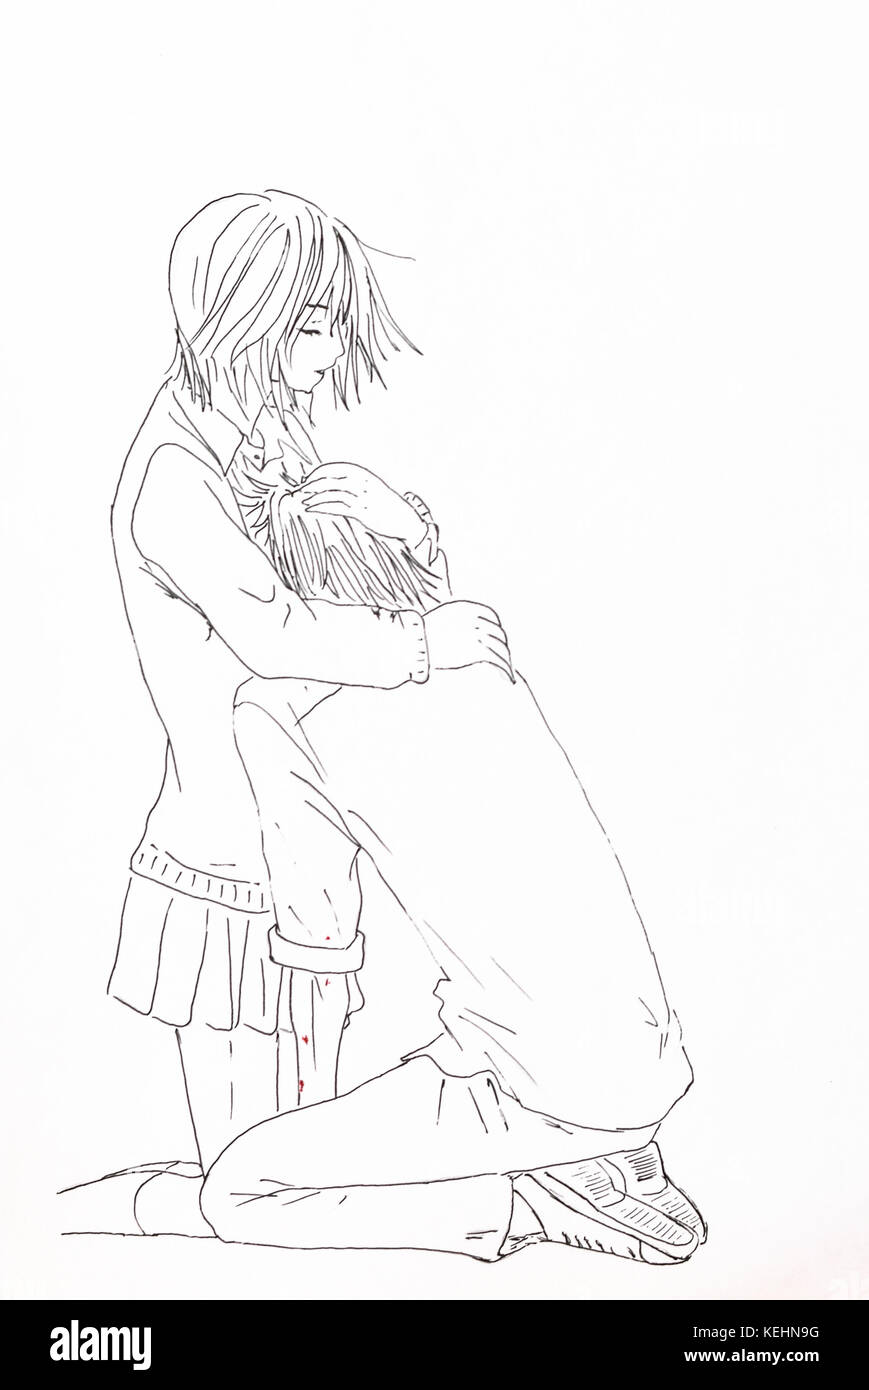 Drawing in the style of anime image enamored girl and the guy in the picture in the style of japanese anime